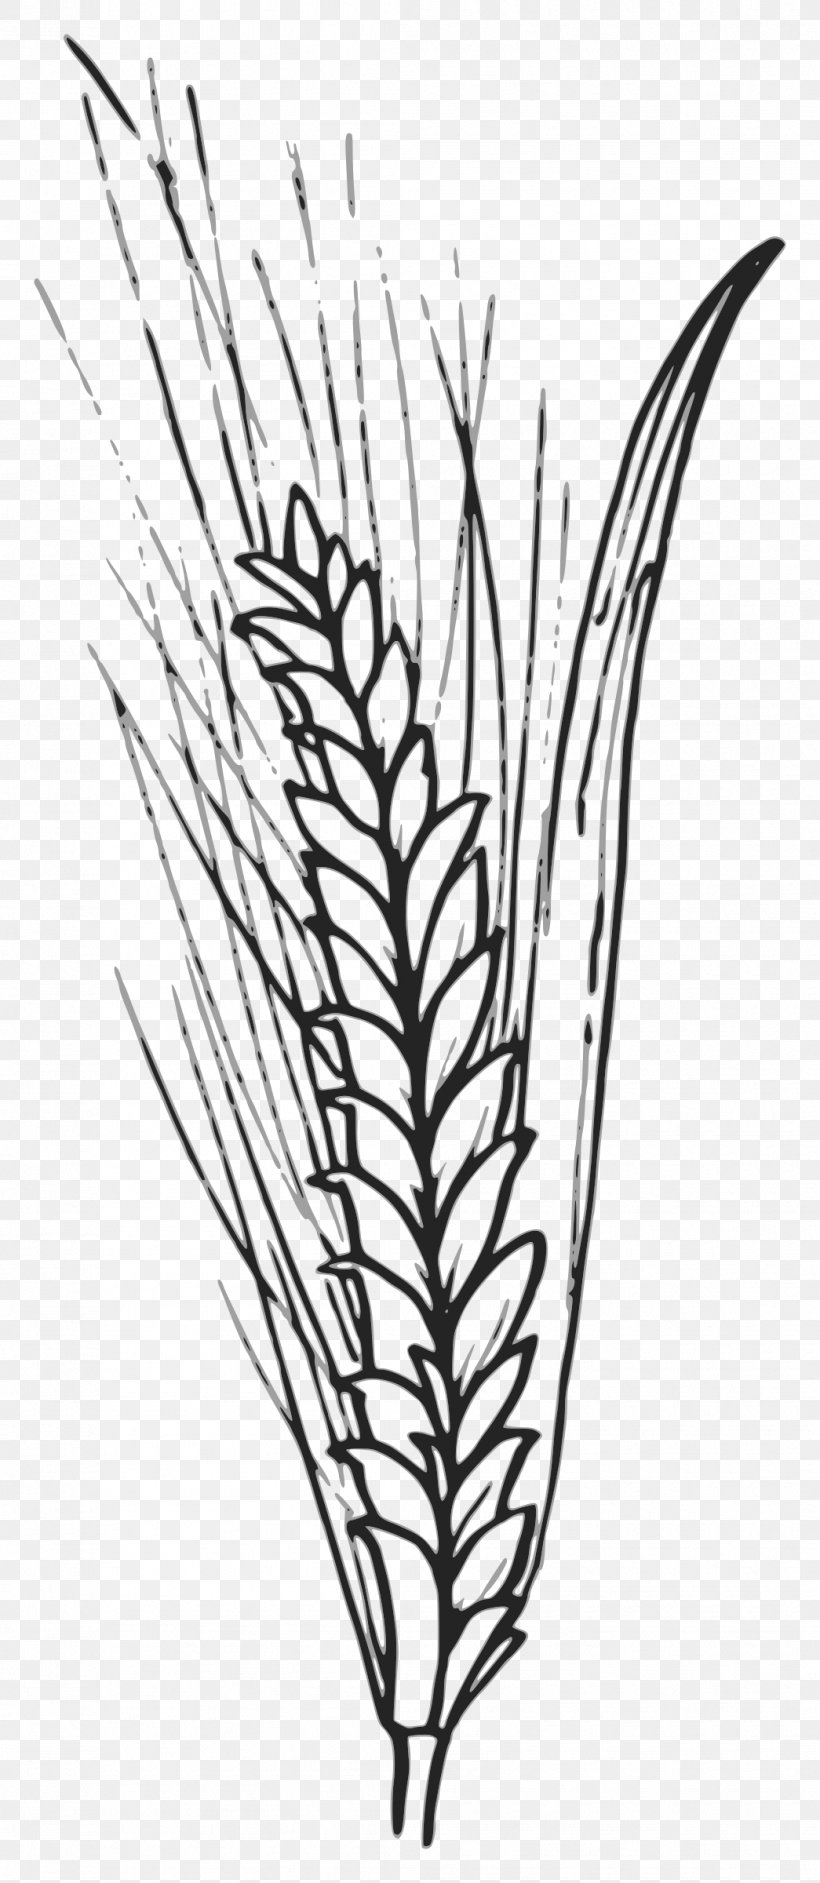 Wheat Grain Cereal Clip Art, PNG, 1045x2400px, Wheat.